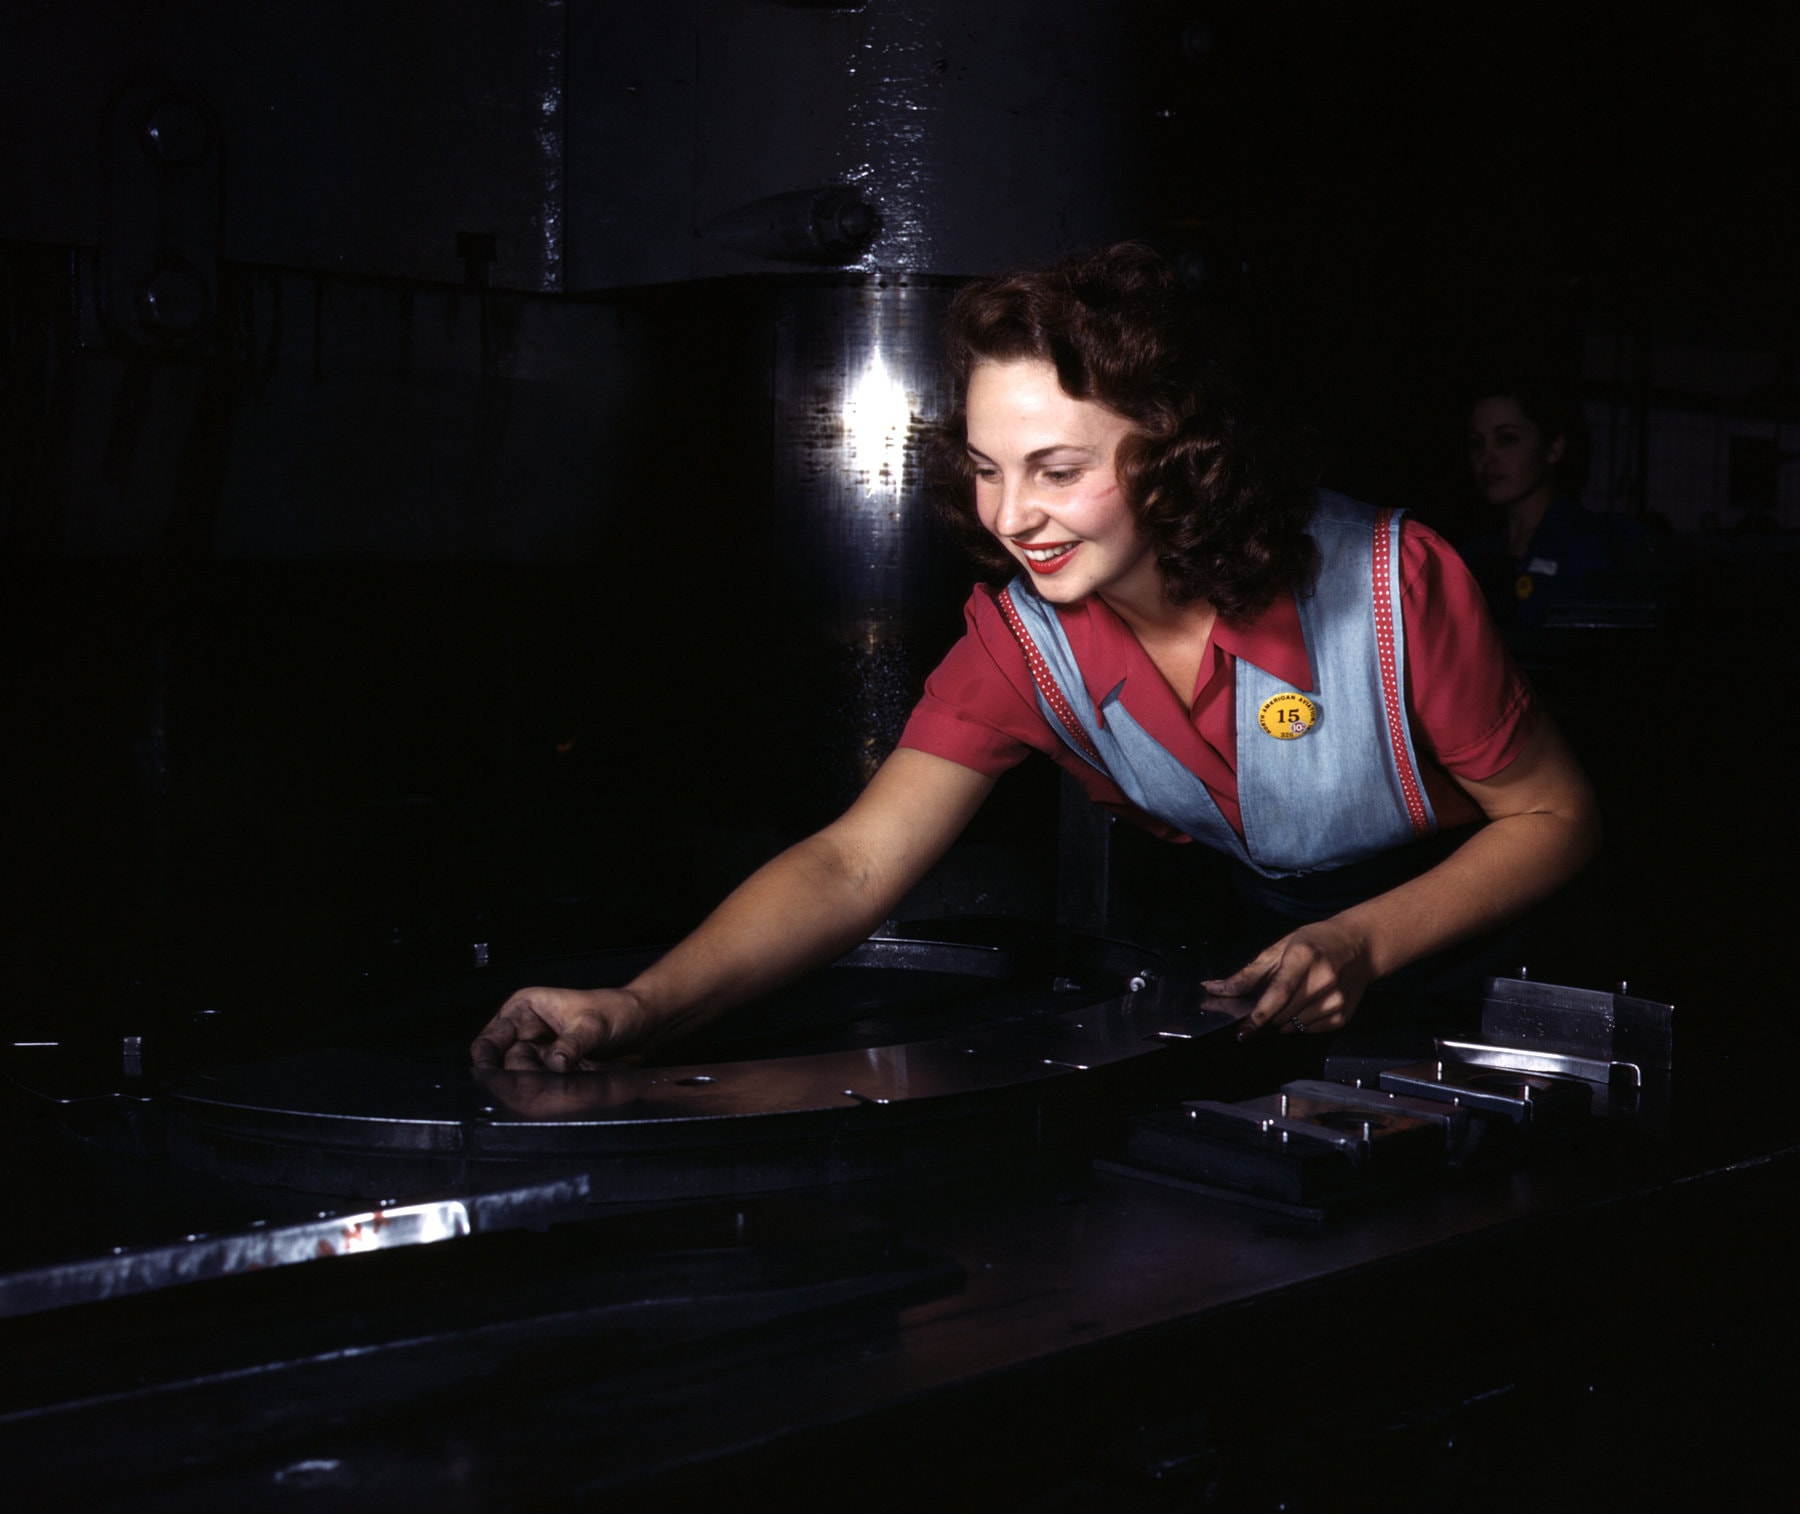 Placing metal parts on masonite at an aviation company during WWII